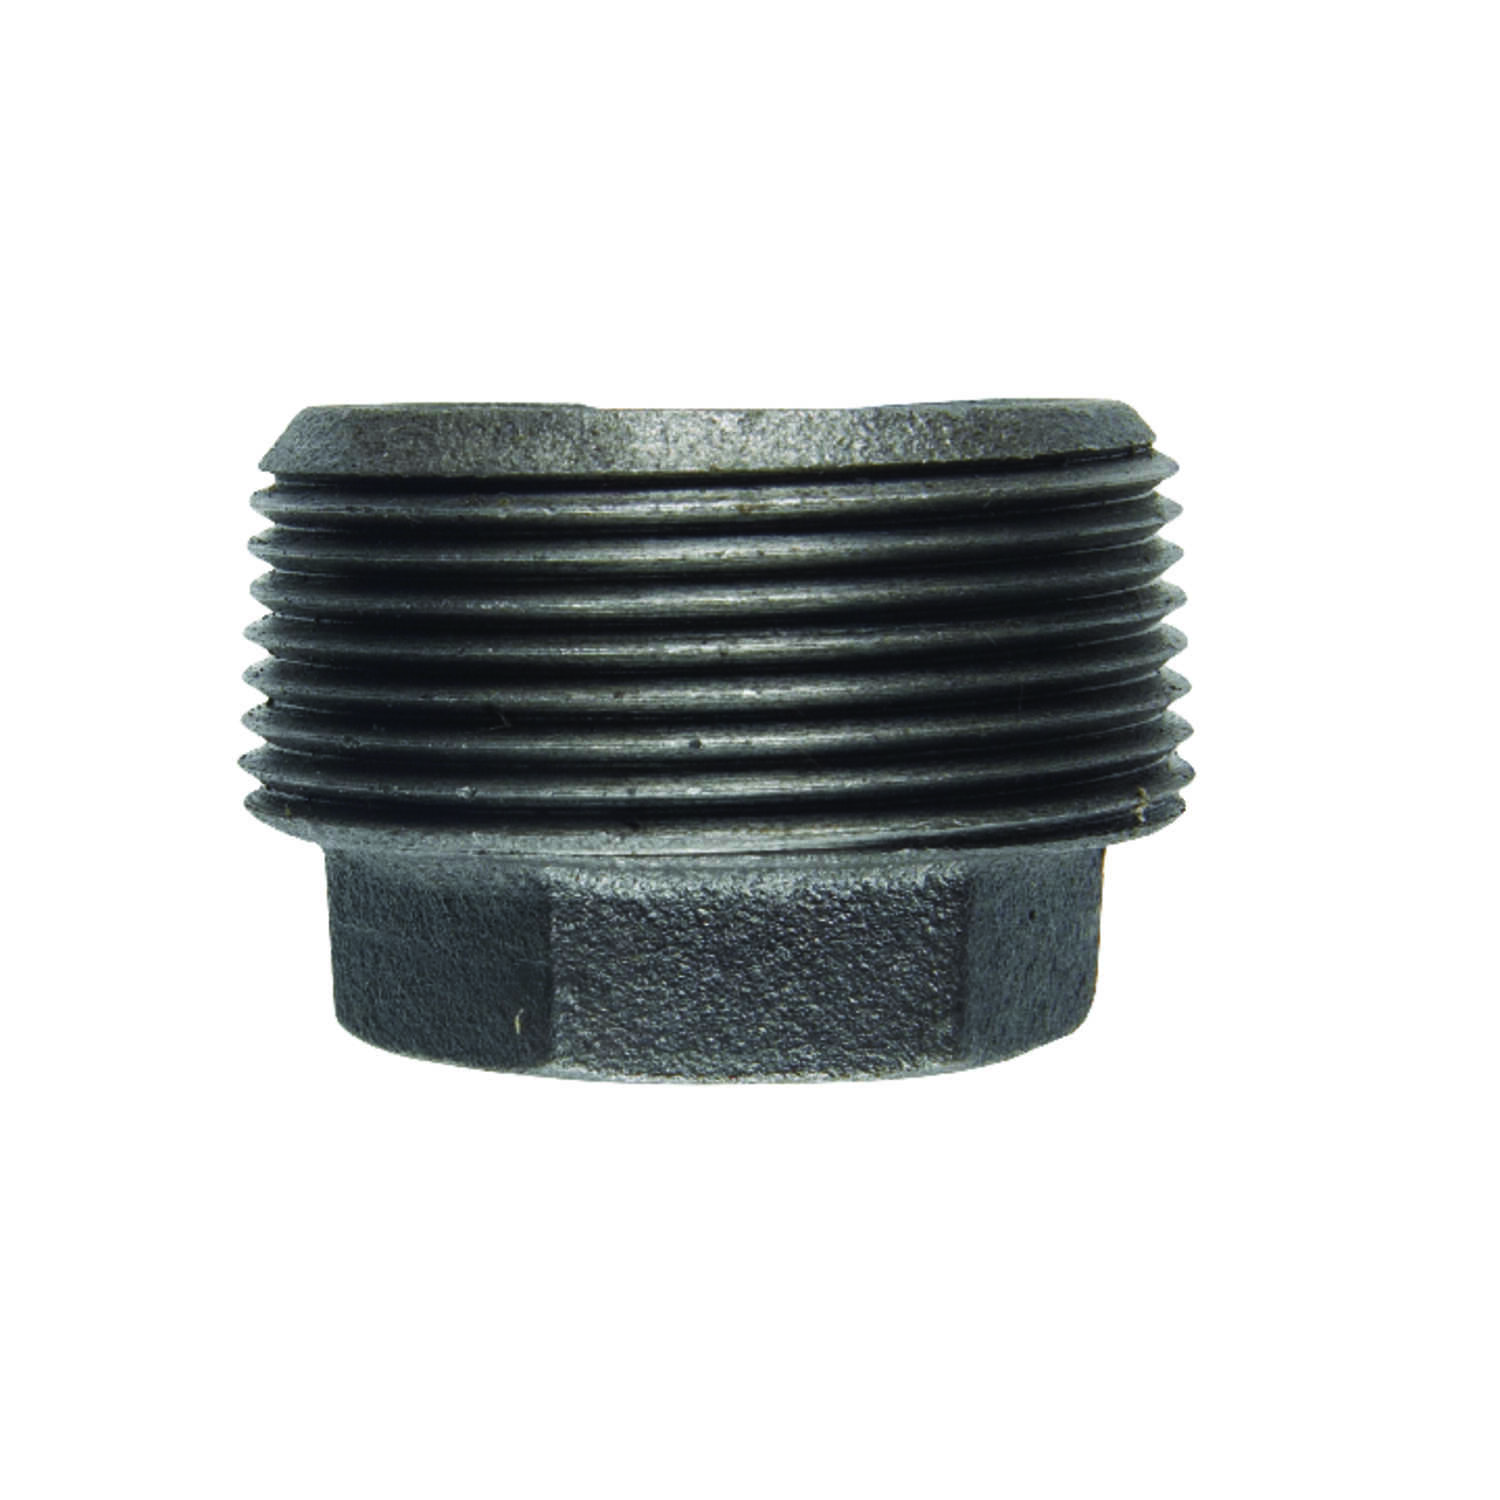 B & K  1/2 in. MPT   x 1/8 in. Dia. FPT  Black  Malleable Iron  Hex Bushing